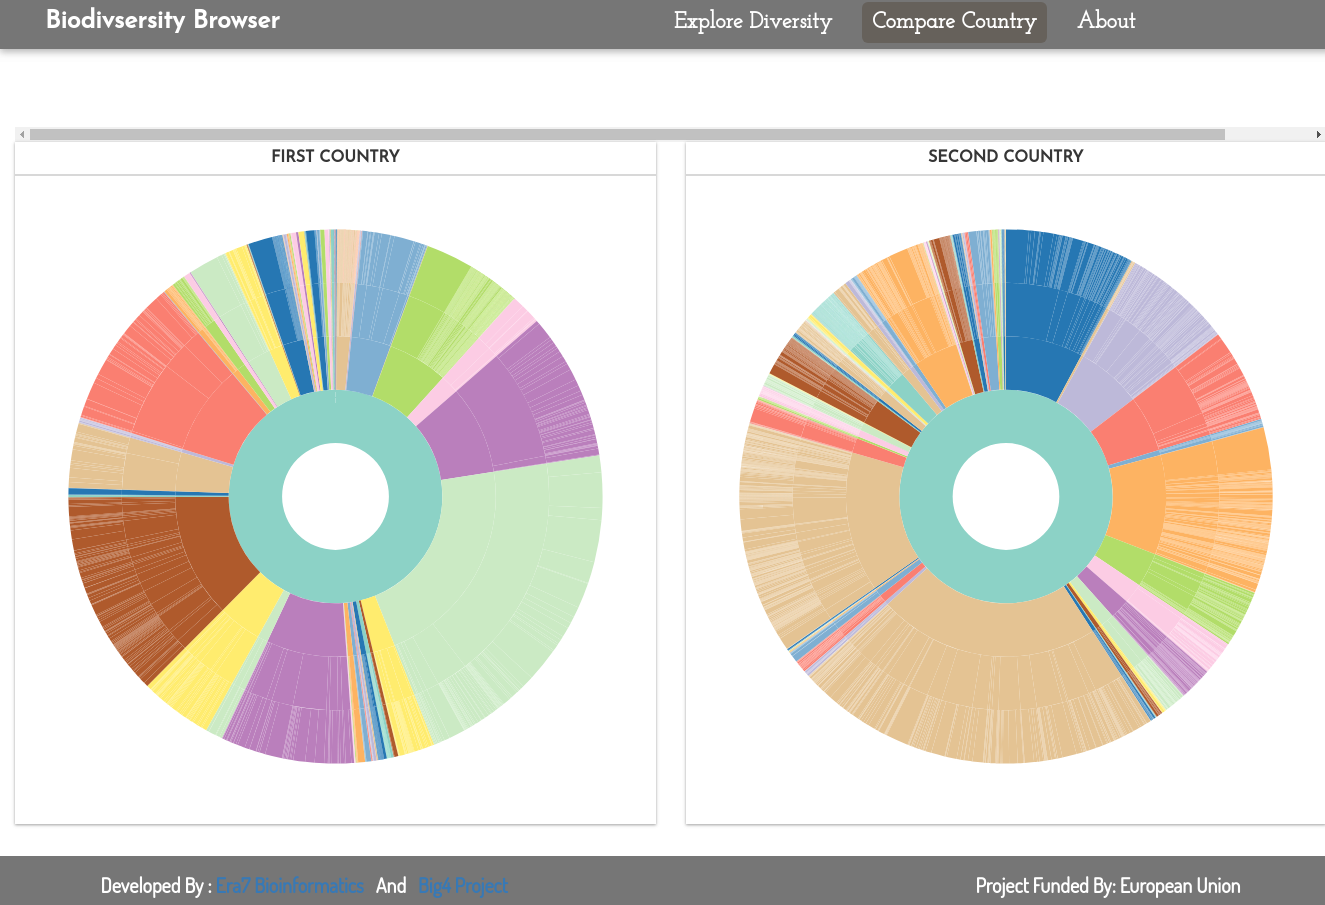 Visualizing Biodiversity Data With D3 js And leaflet js